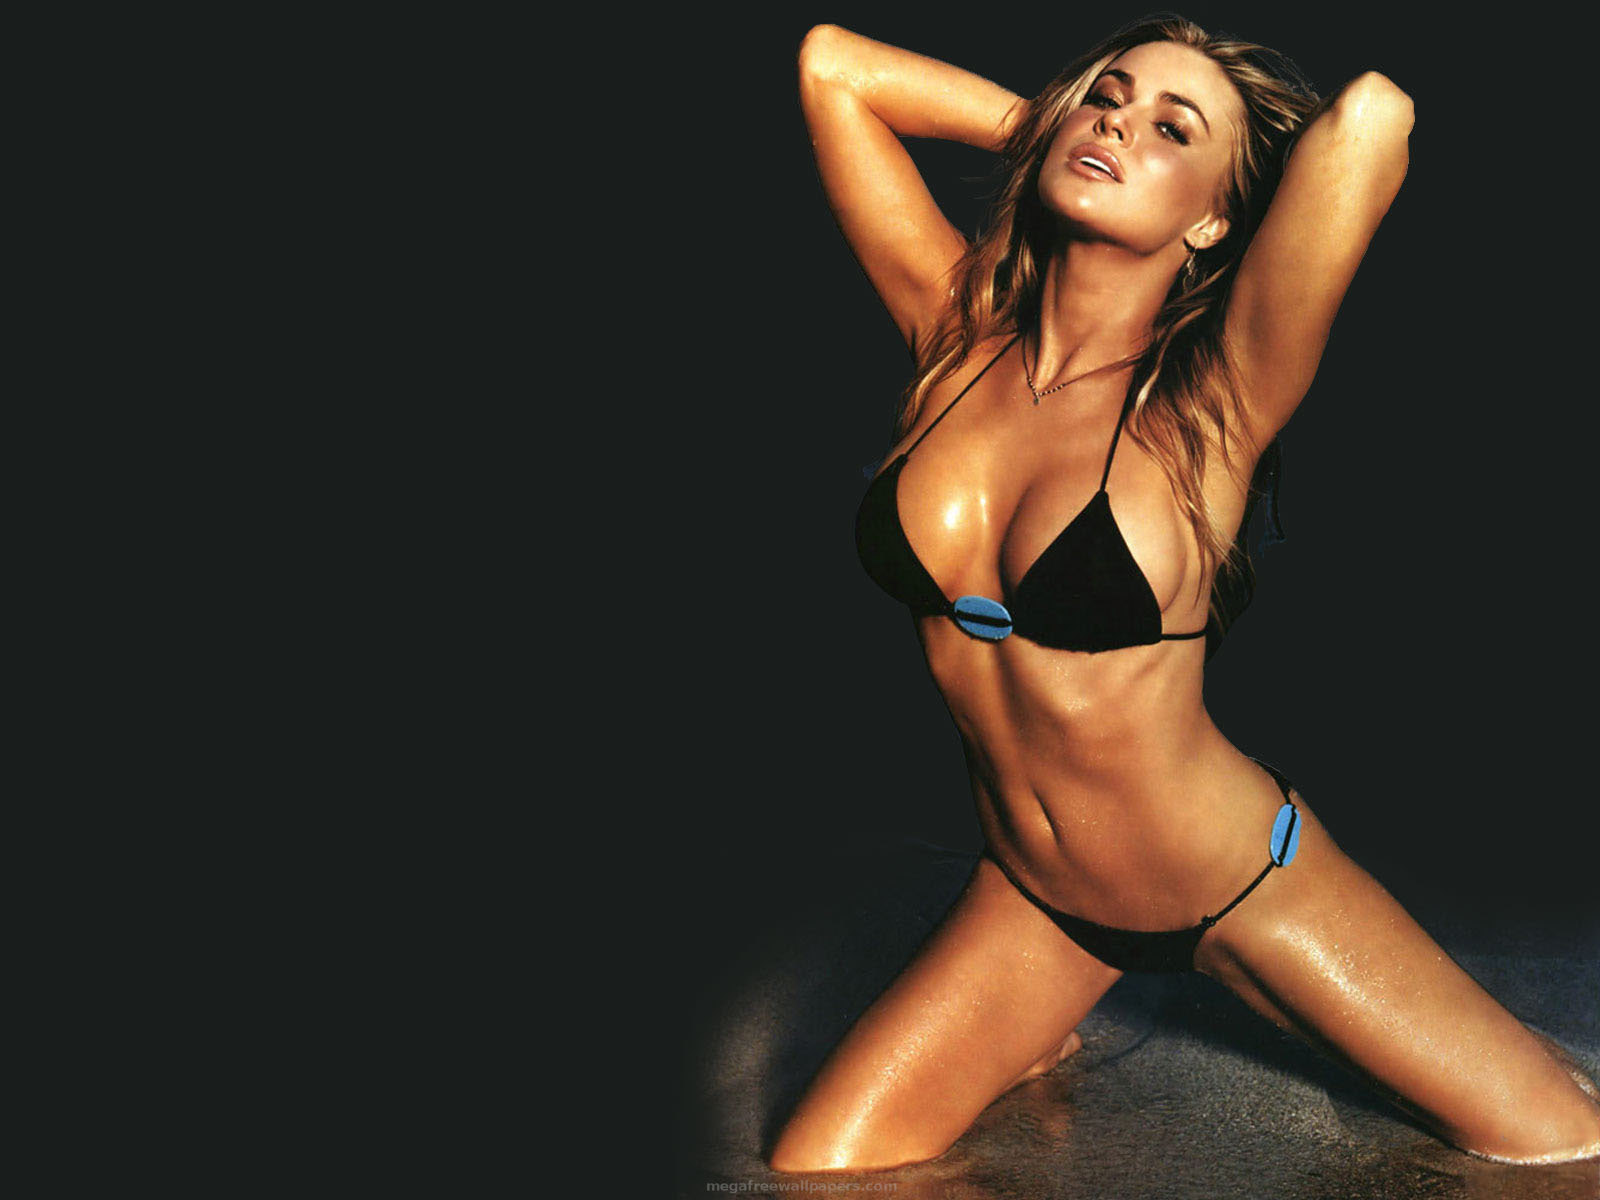 Carmen electra naked wallpaper